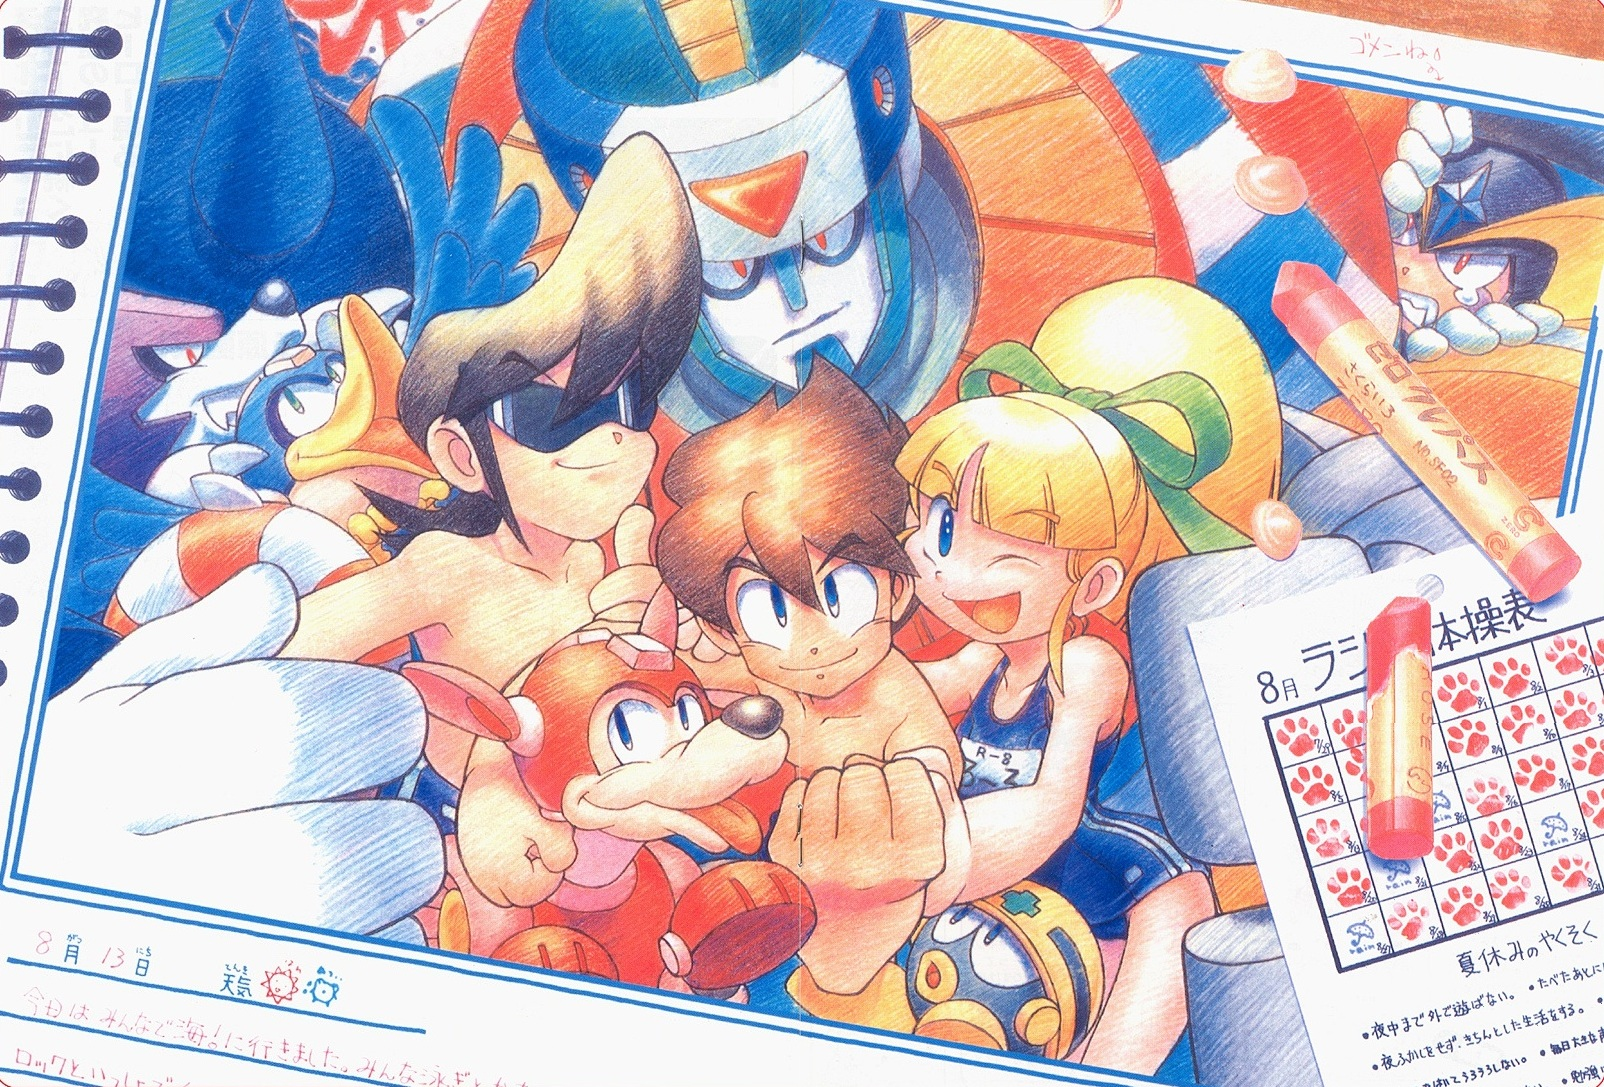 Mega man and roll have sex